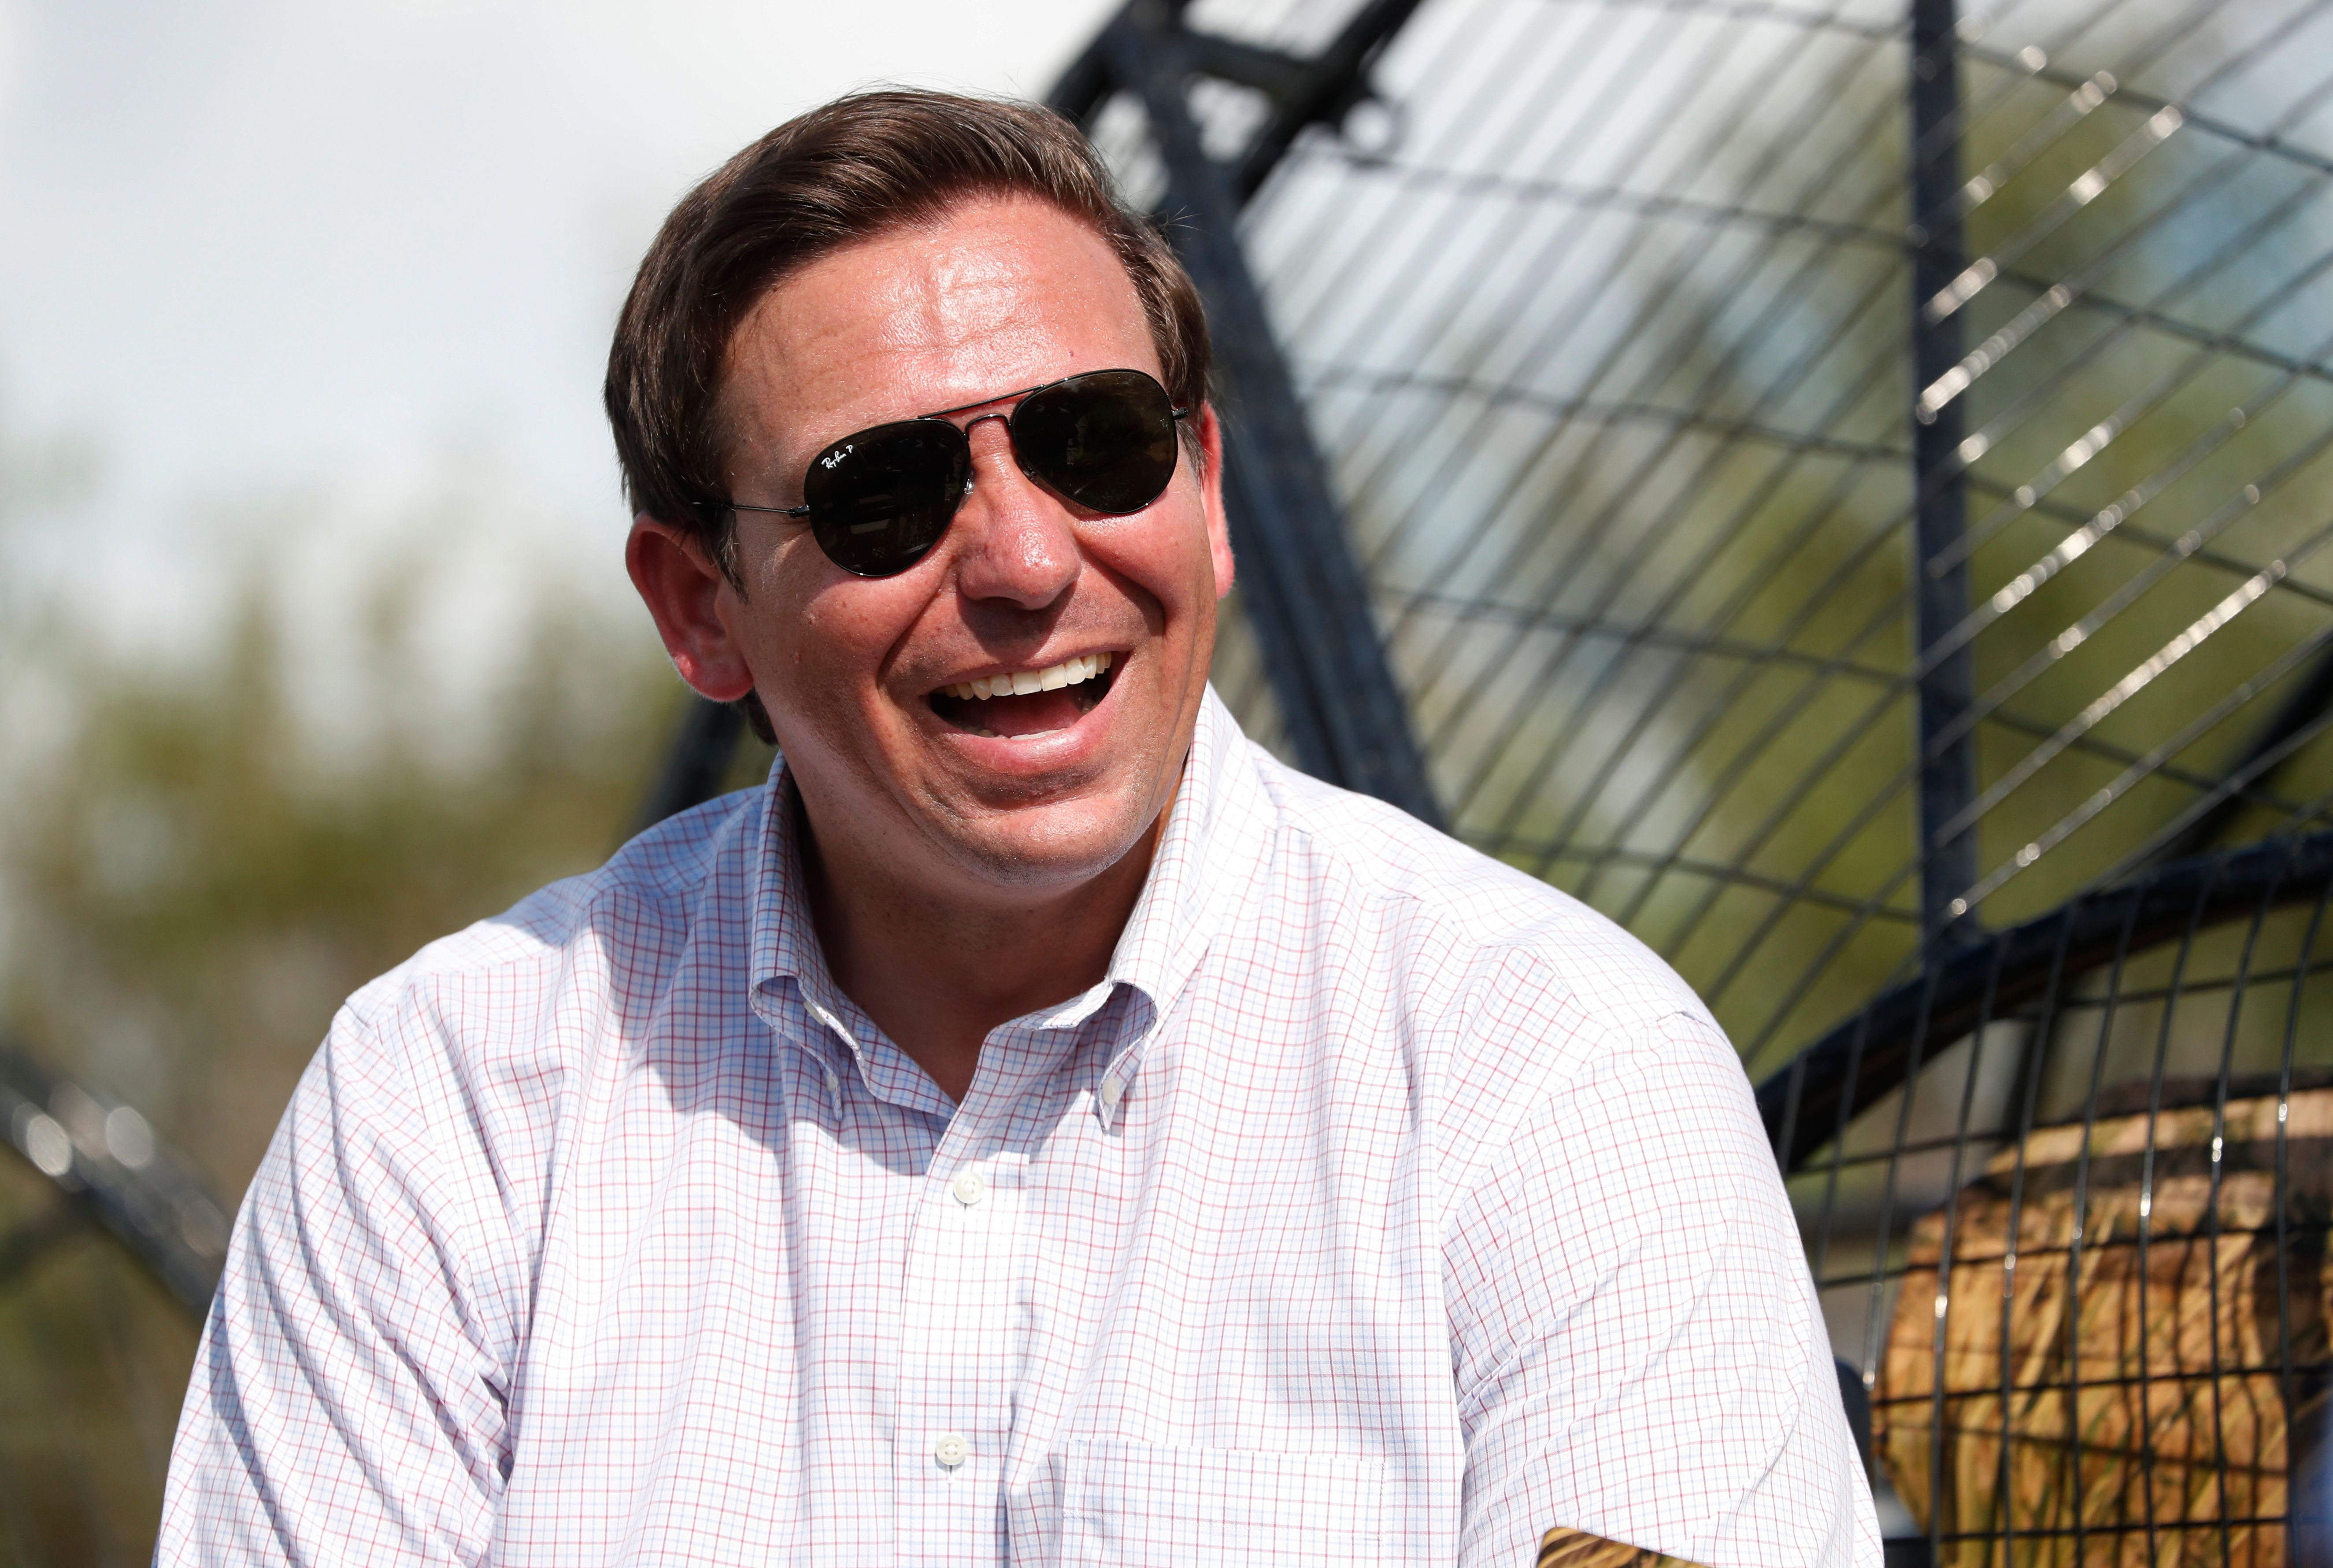 FILE - In this Sept. 12, 2018, file photo, Republican candidate for Florida Governor Ron DeSantis smiles during an airboat tour of the Florida Everglades in Fort Lauderdale, Fla. Top Florida Republicans have been quick to say President Donald Trump is wrong about the death toll in Puerto Rico. DeSantis, who won the GOP primary for governor with Trump's endorsement, also said the president is not correct. (AP Photo/Wilfredo Lee, File)